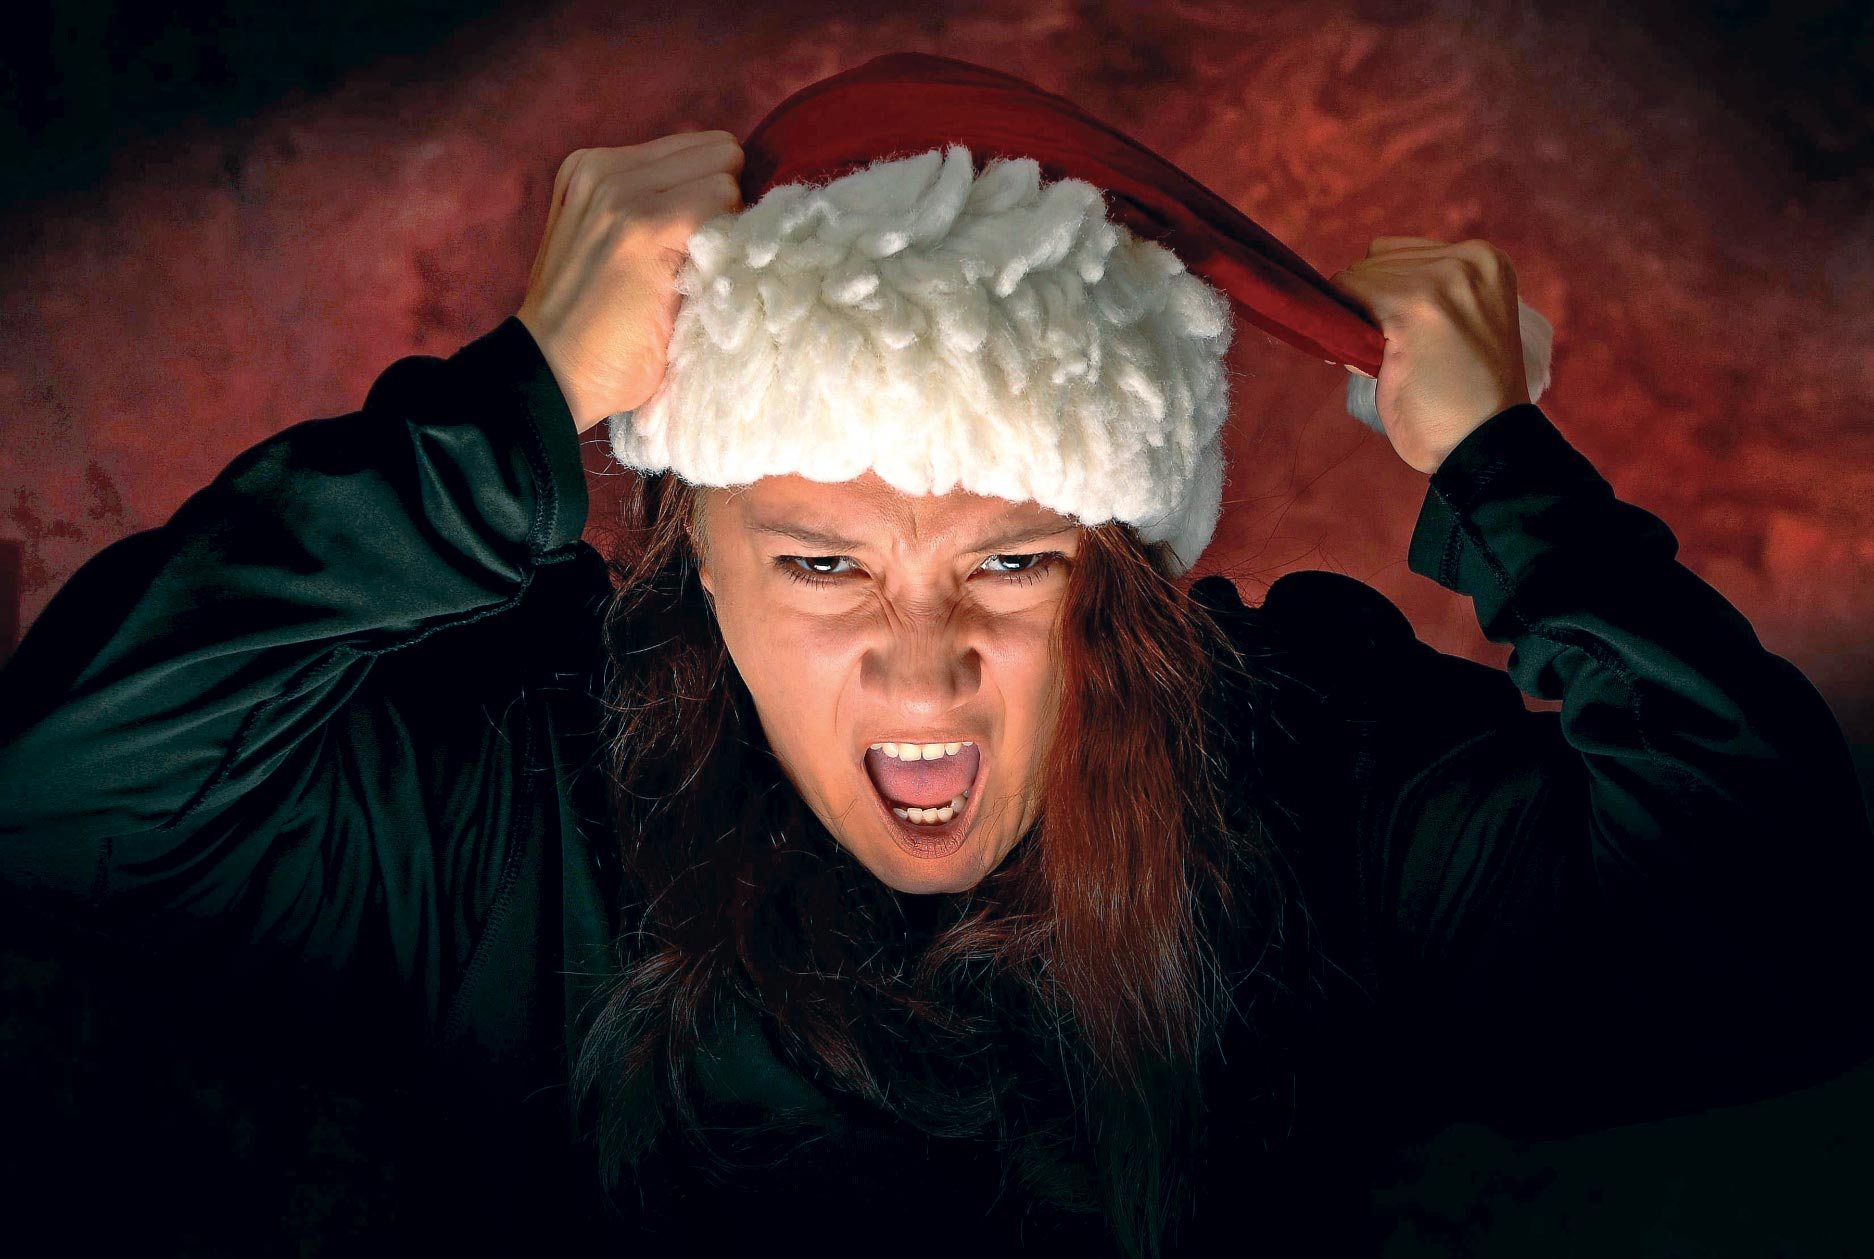 Airman Adrianna Barelas, 4th Space Operations Squadron system administrator, displays her Grinch side for the holiday season at Schriever Air Force Base, Colorado, Dec. 1, 2017. Many things can cause stress during the holidays, including financial strain from gift buying, social pressure and expectations based on tradition.